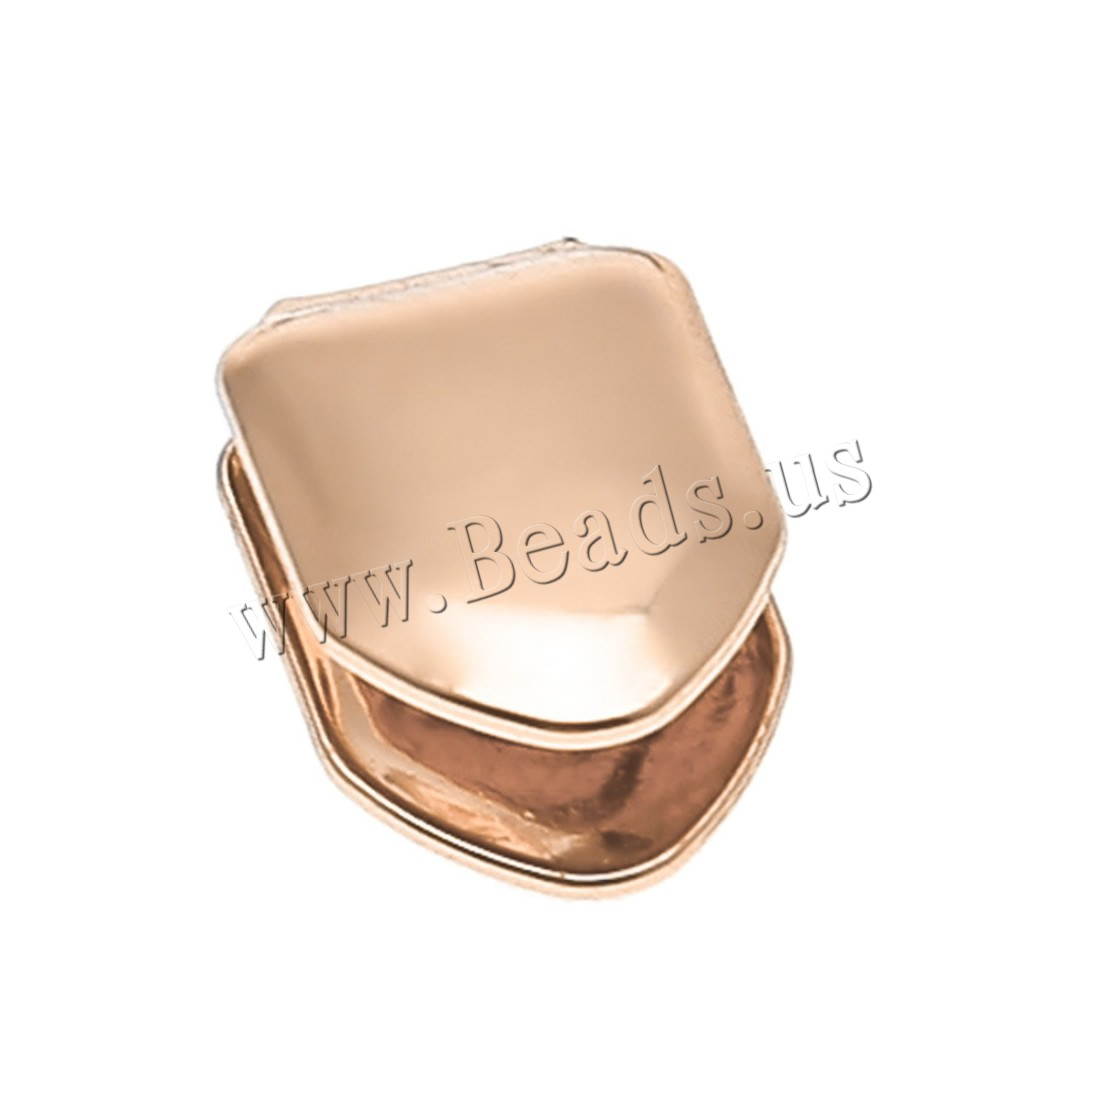 Buy Brass Hip Hop Single Tooth plated Unisex colors choice nickel lead & cadmium free 8x12mm Sold PC